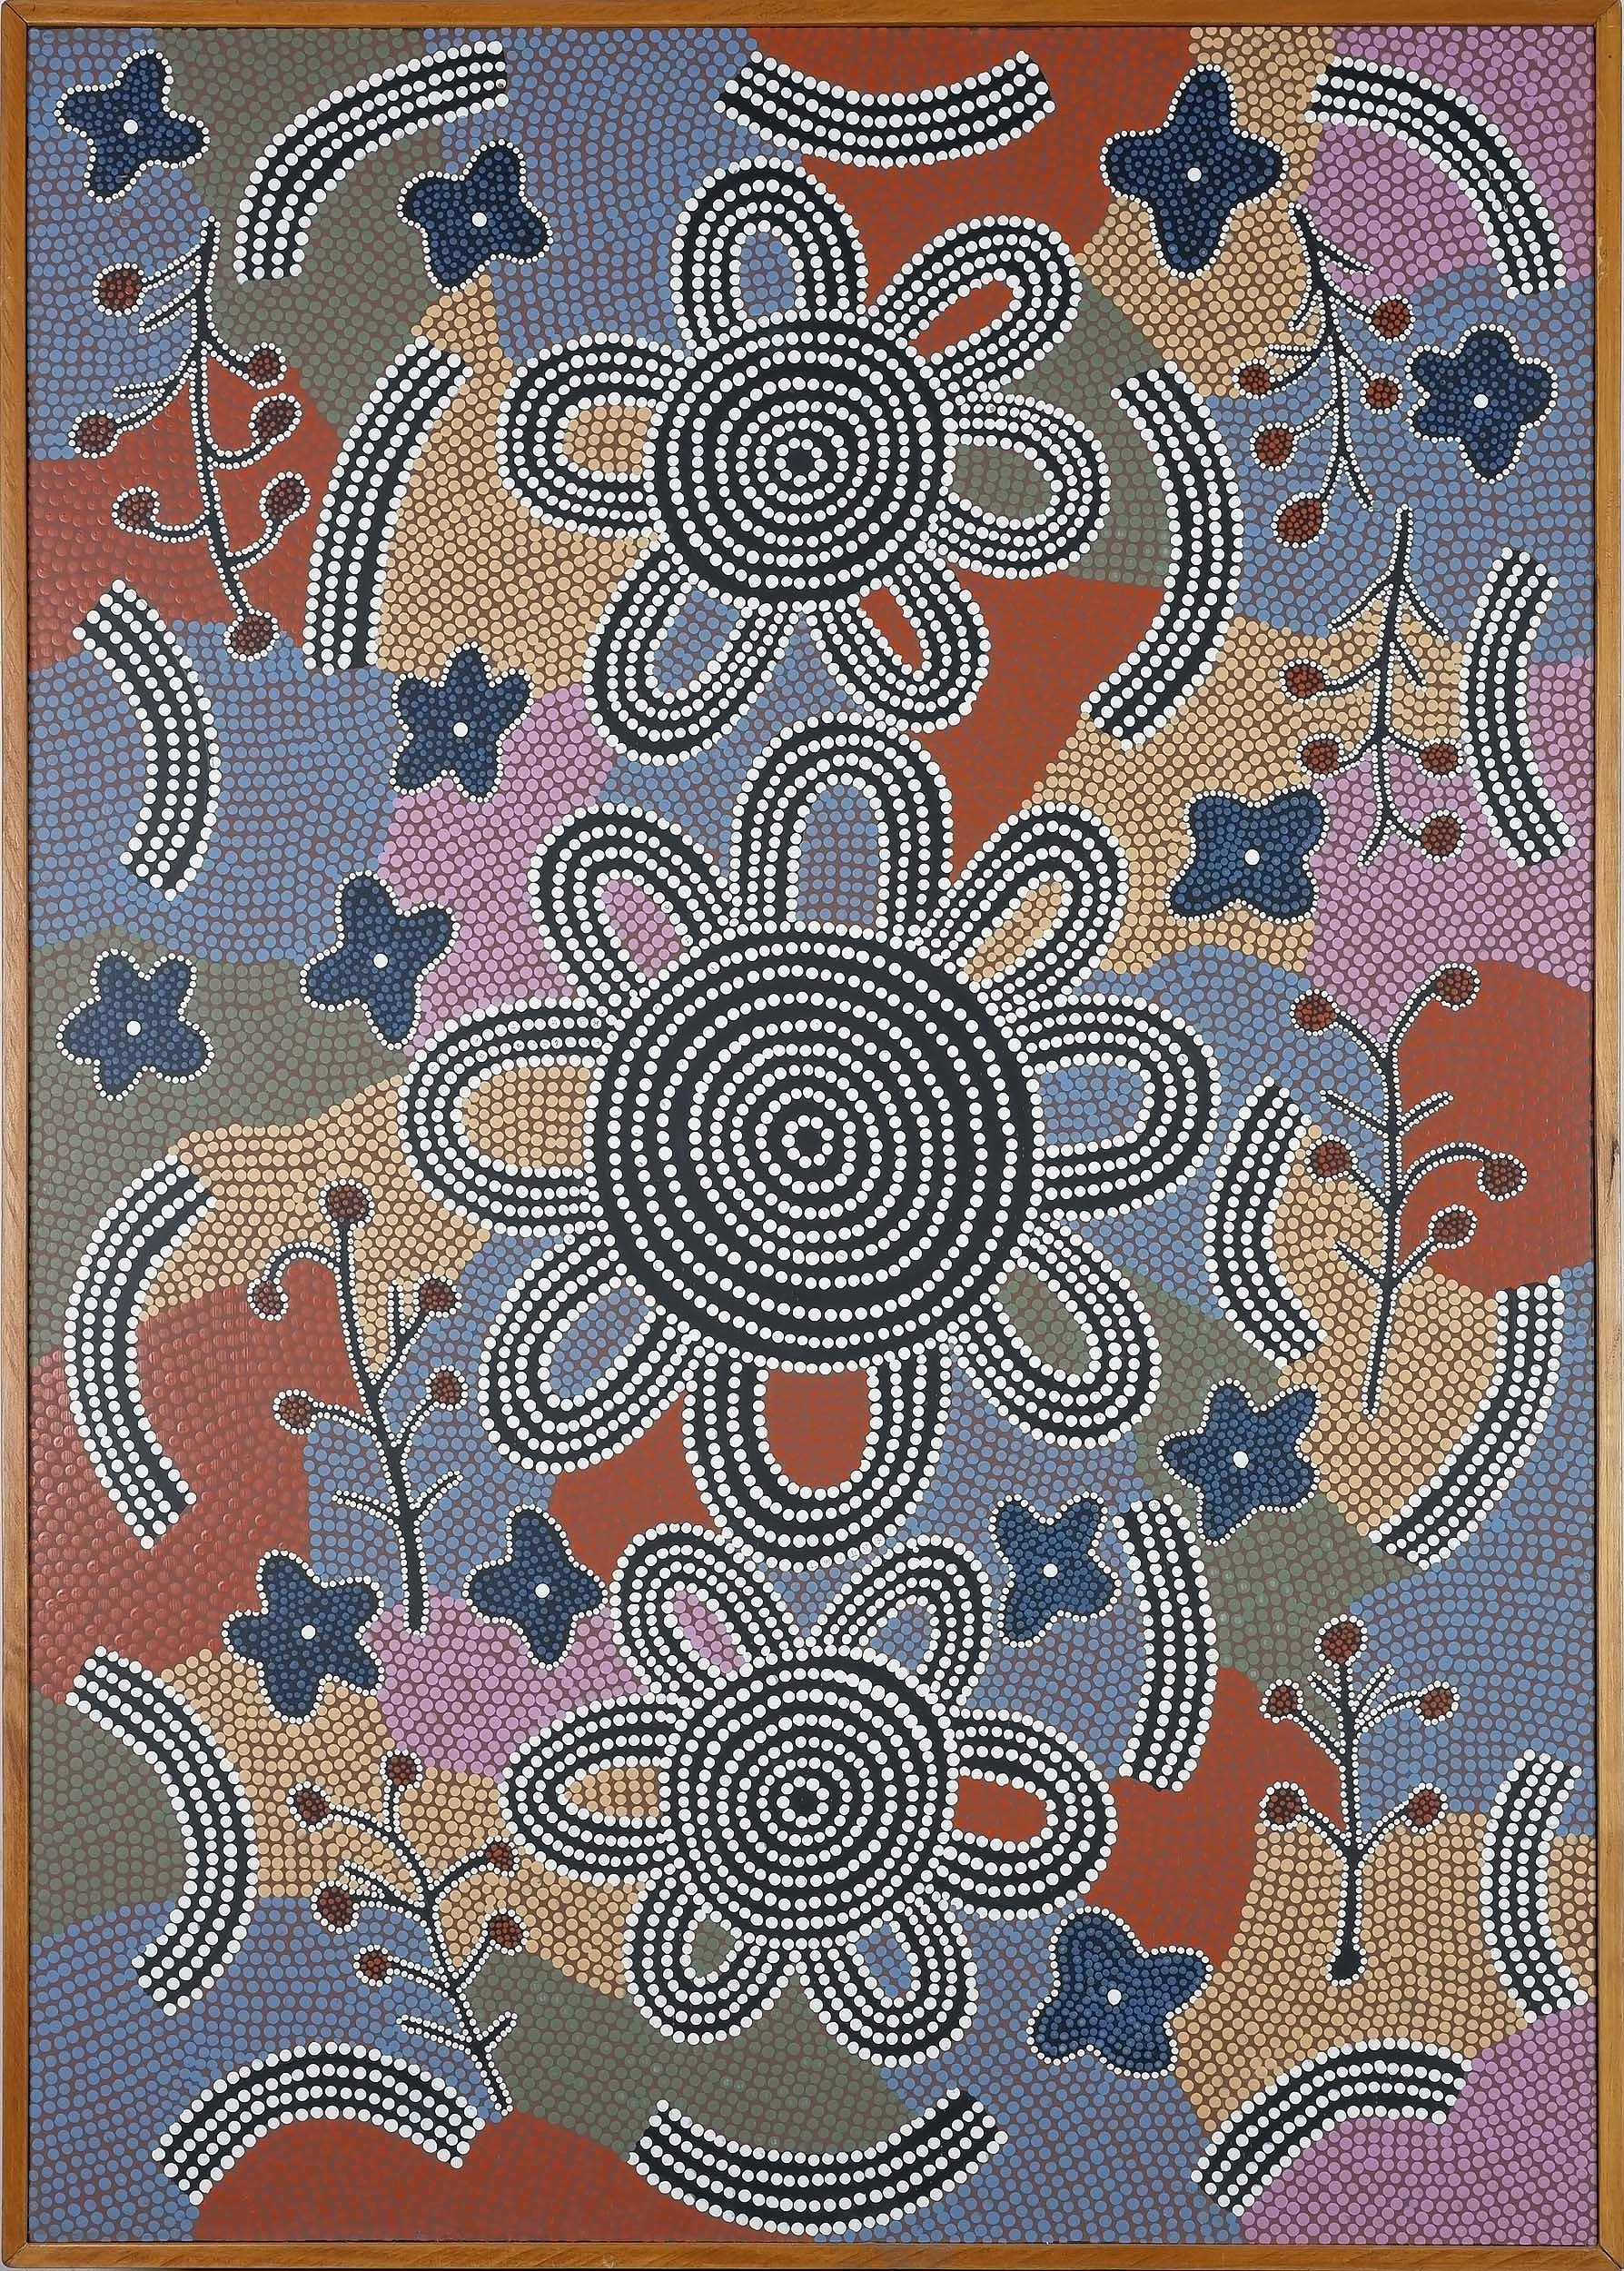 'Attributed to Michael Nelson Tjakamarra (1948-) Honey Ant Dreaming Papunya 1992, Acrylic on Board'